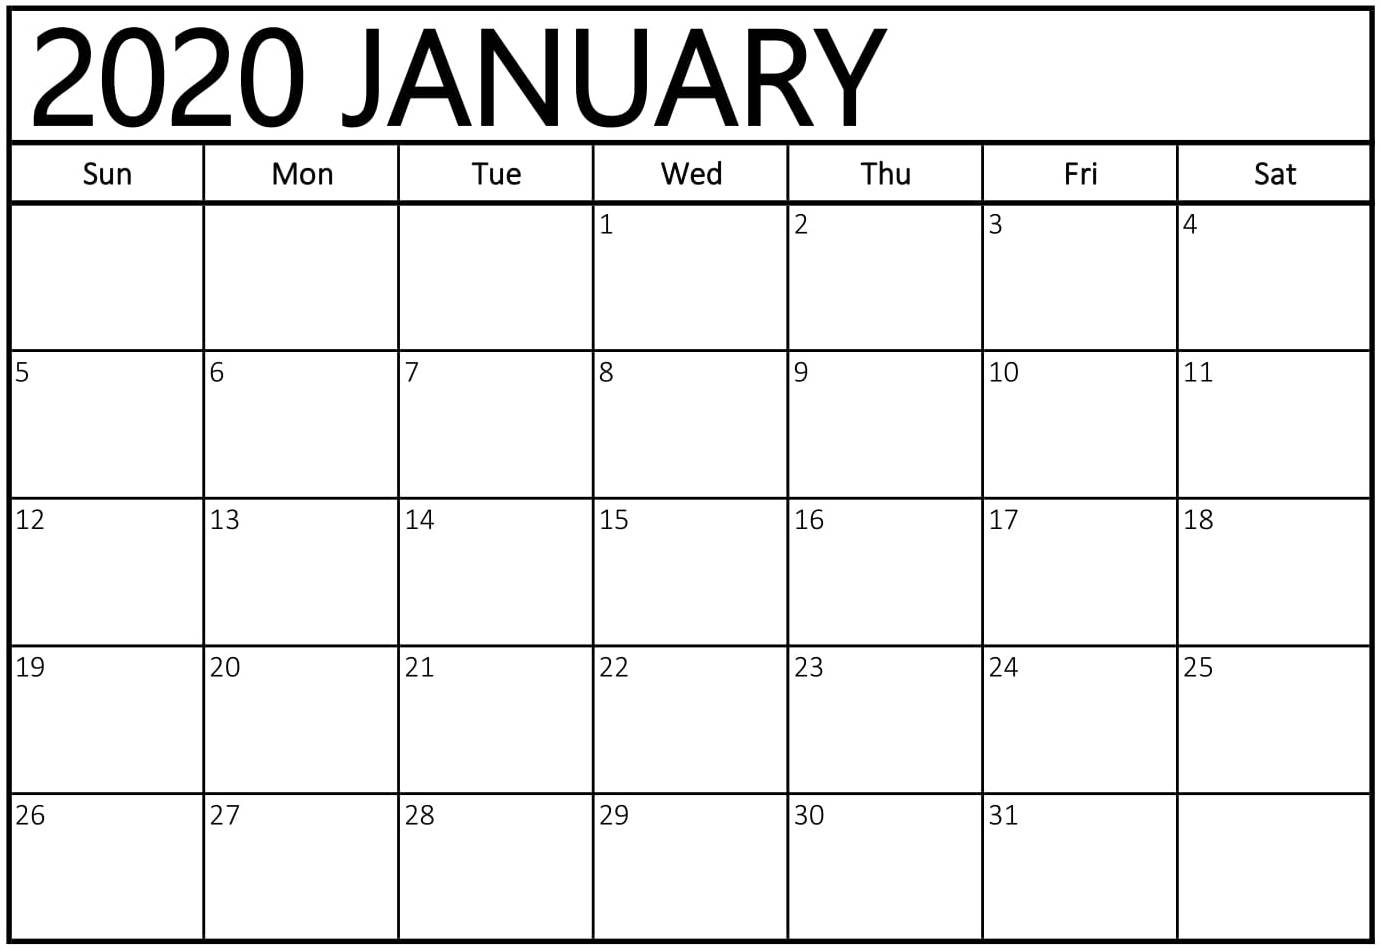 January 2020 Calendar New Zealand - Wpa.wpart.co